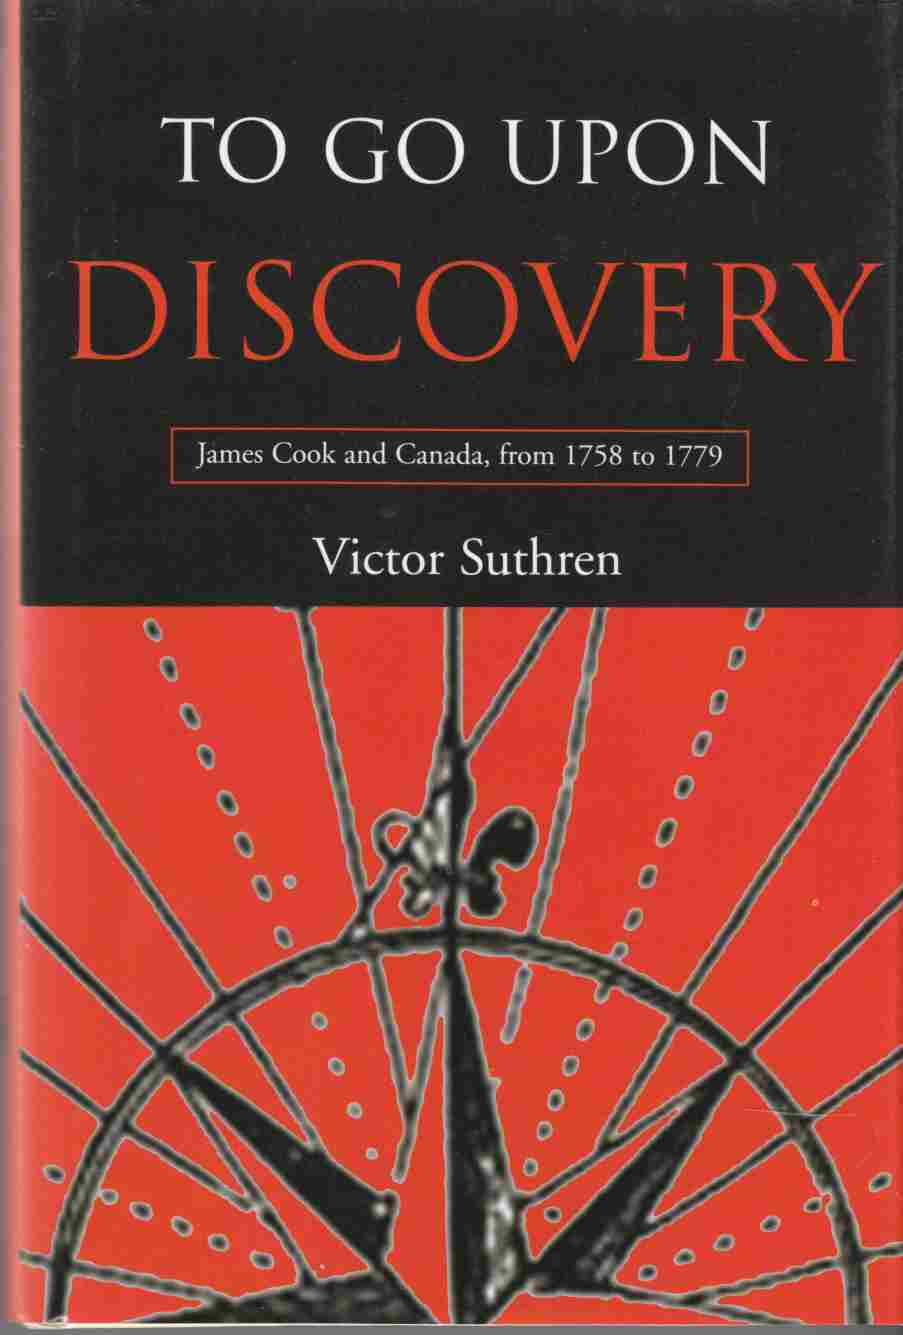 Image for To Go Upon Discovery James Cook and Canada, from 1758 to 1779